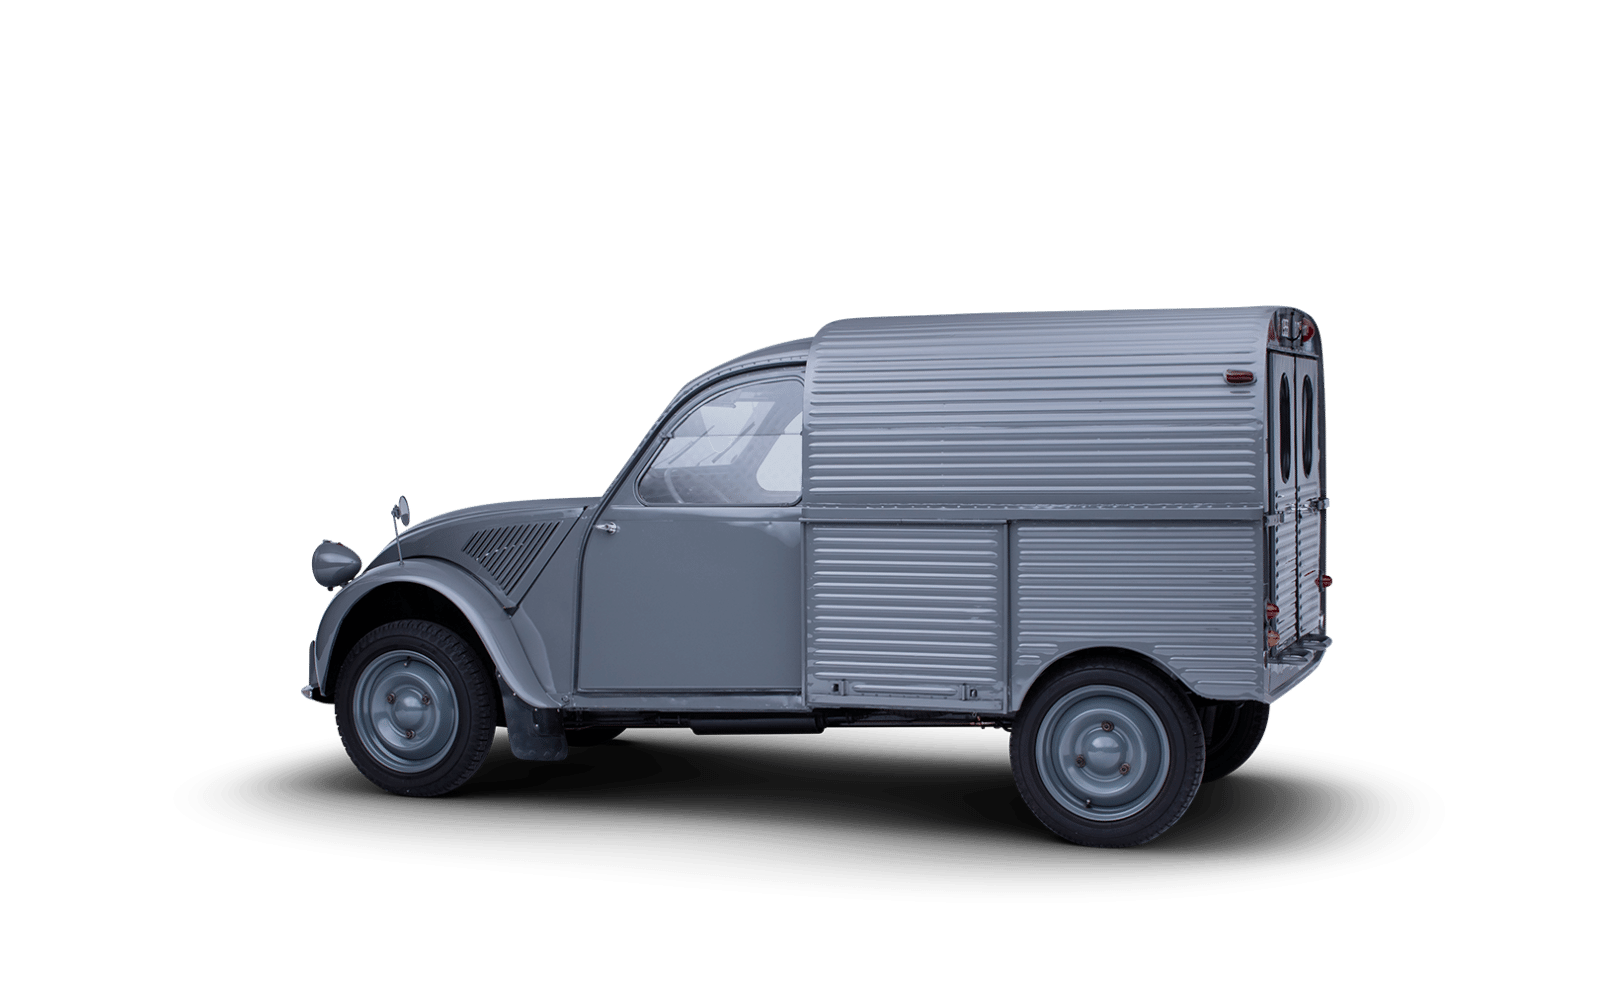 citro n 2cv mini van photos details and equipment citro n origins. Black Bedroom Furniture Sets. Home Design Ideas